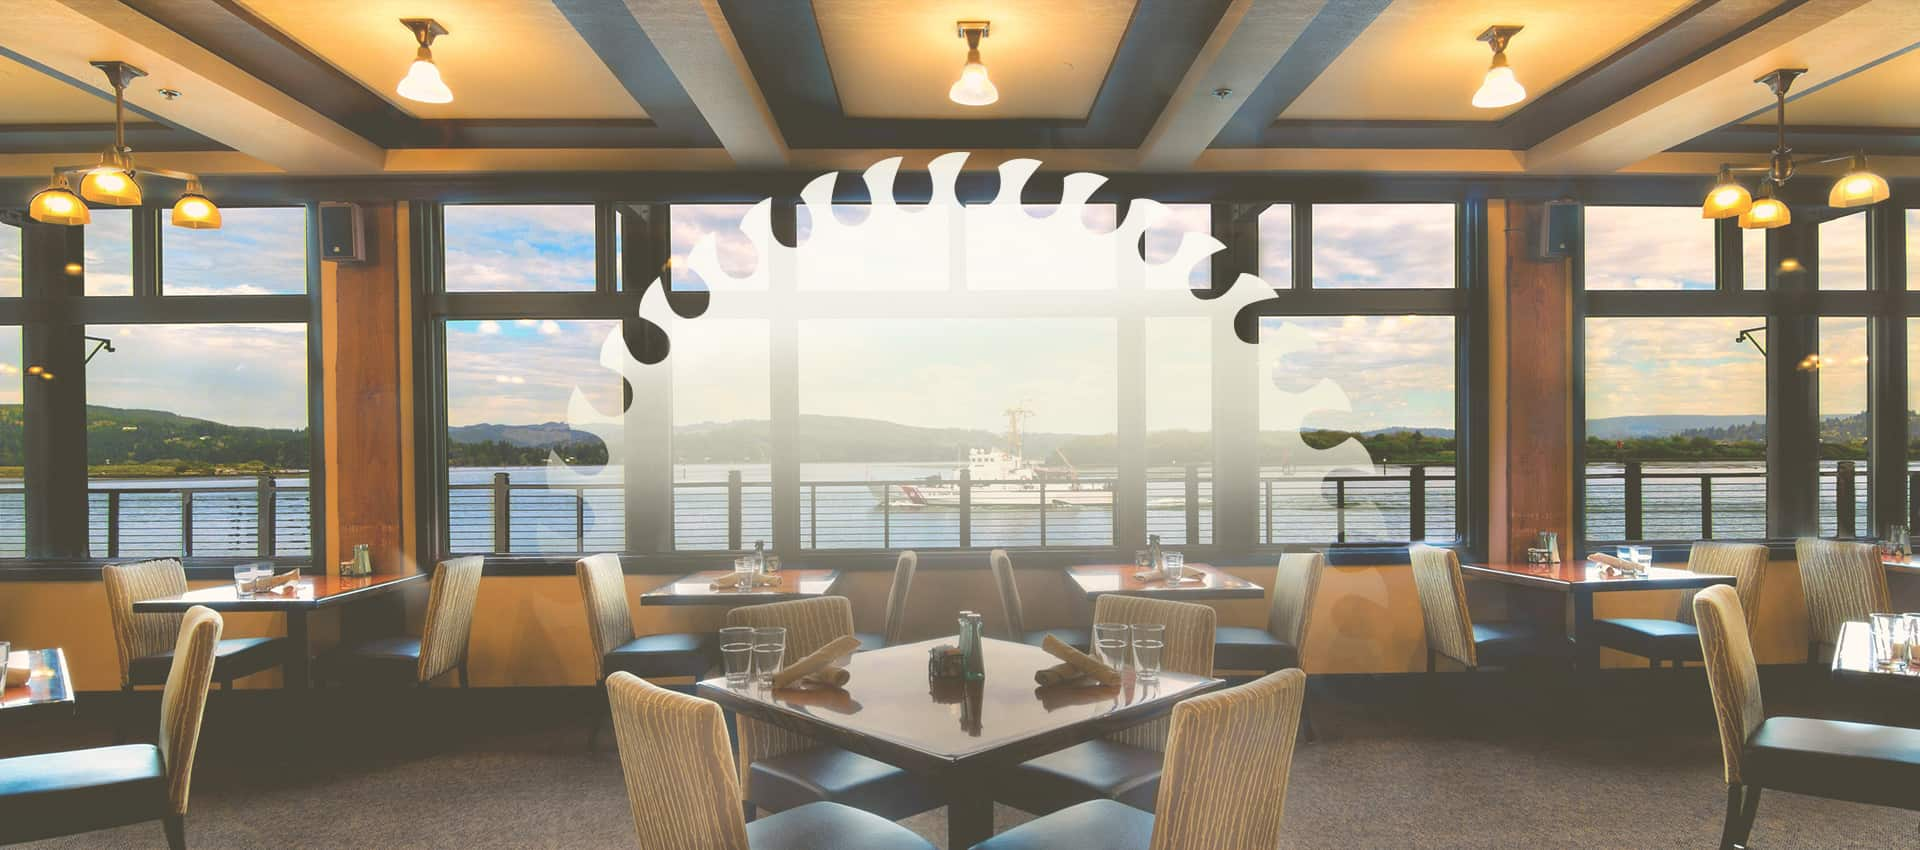 Restaurant dining area at The Mill Casino with view of bay